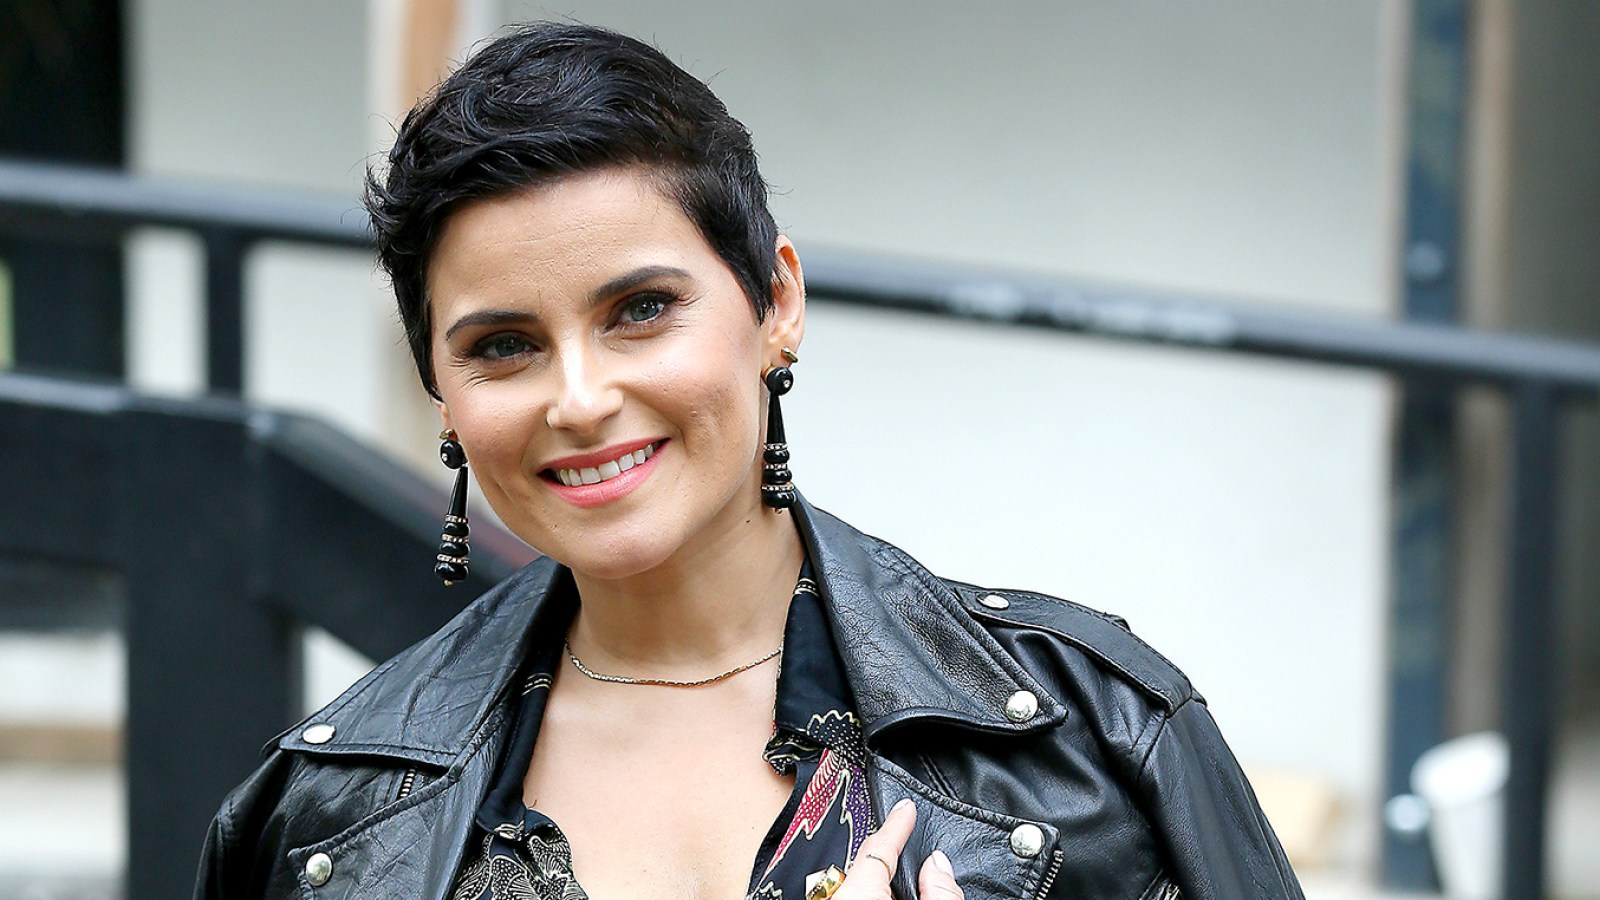 nelly furtado vita privata